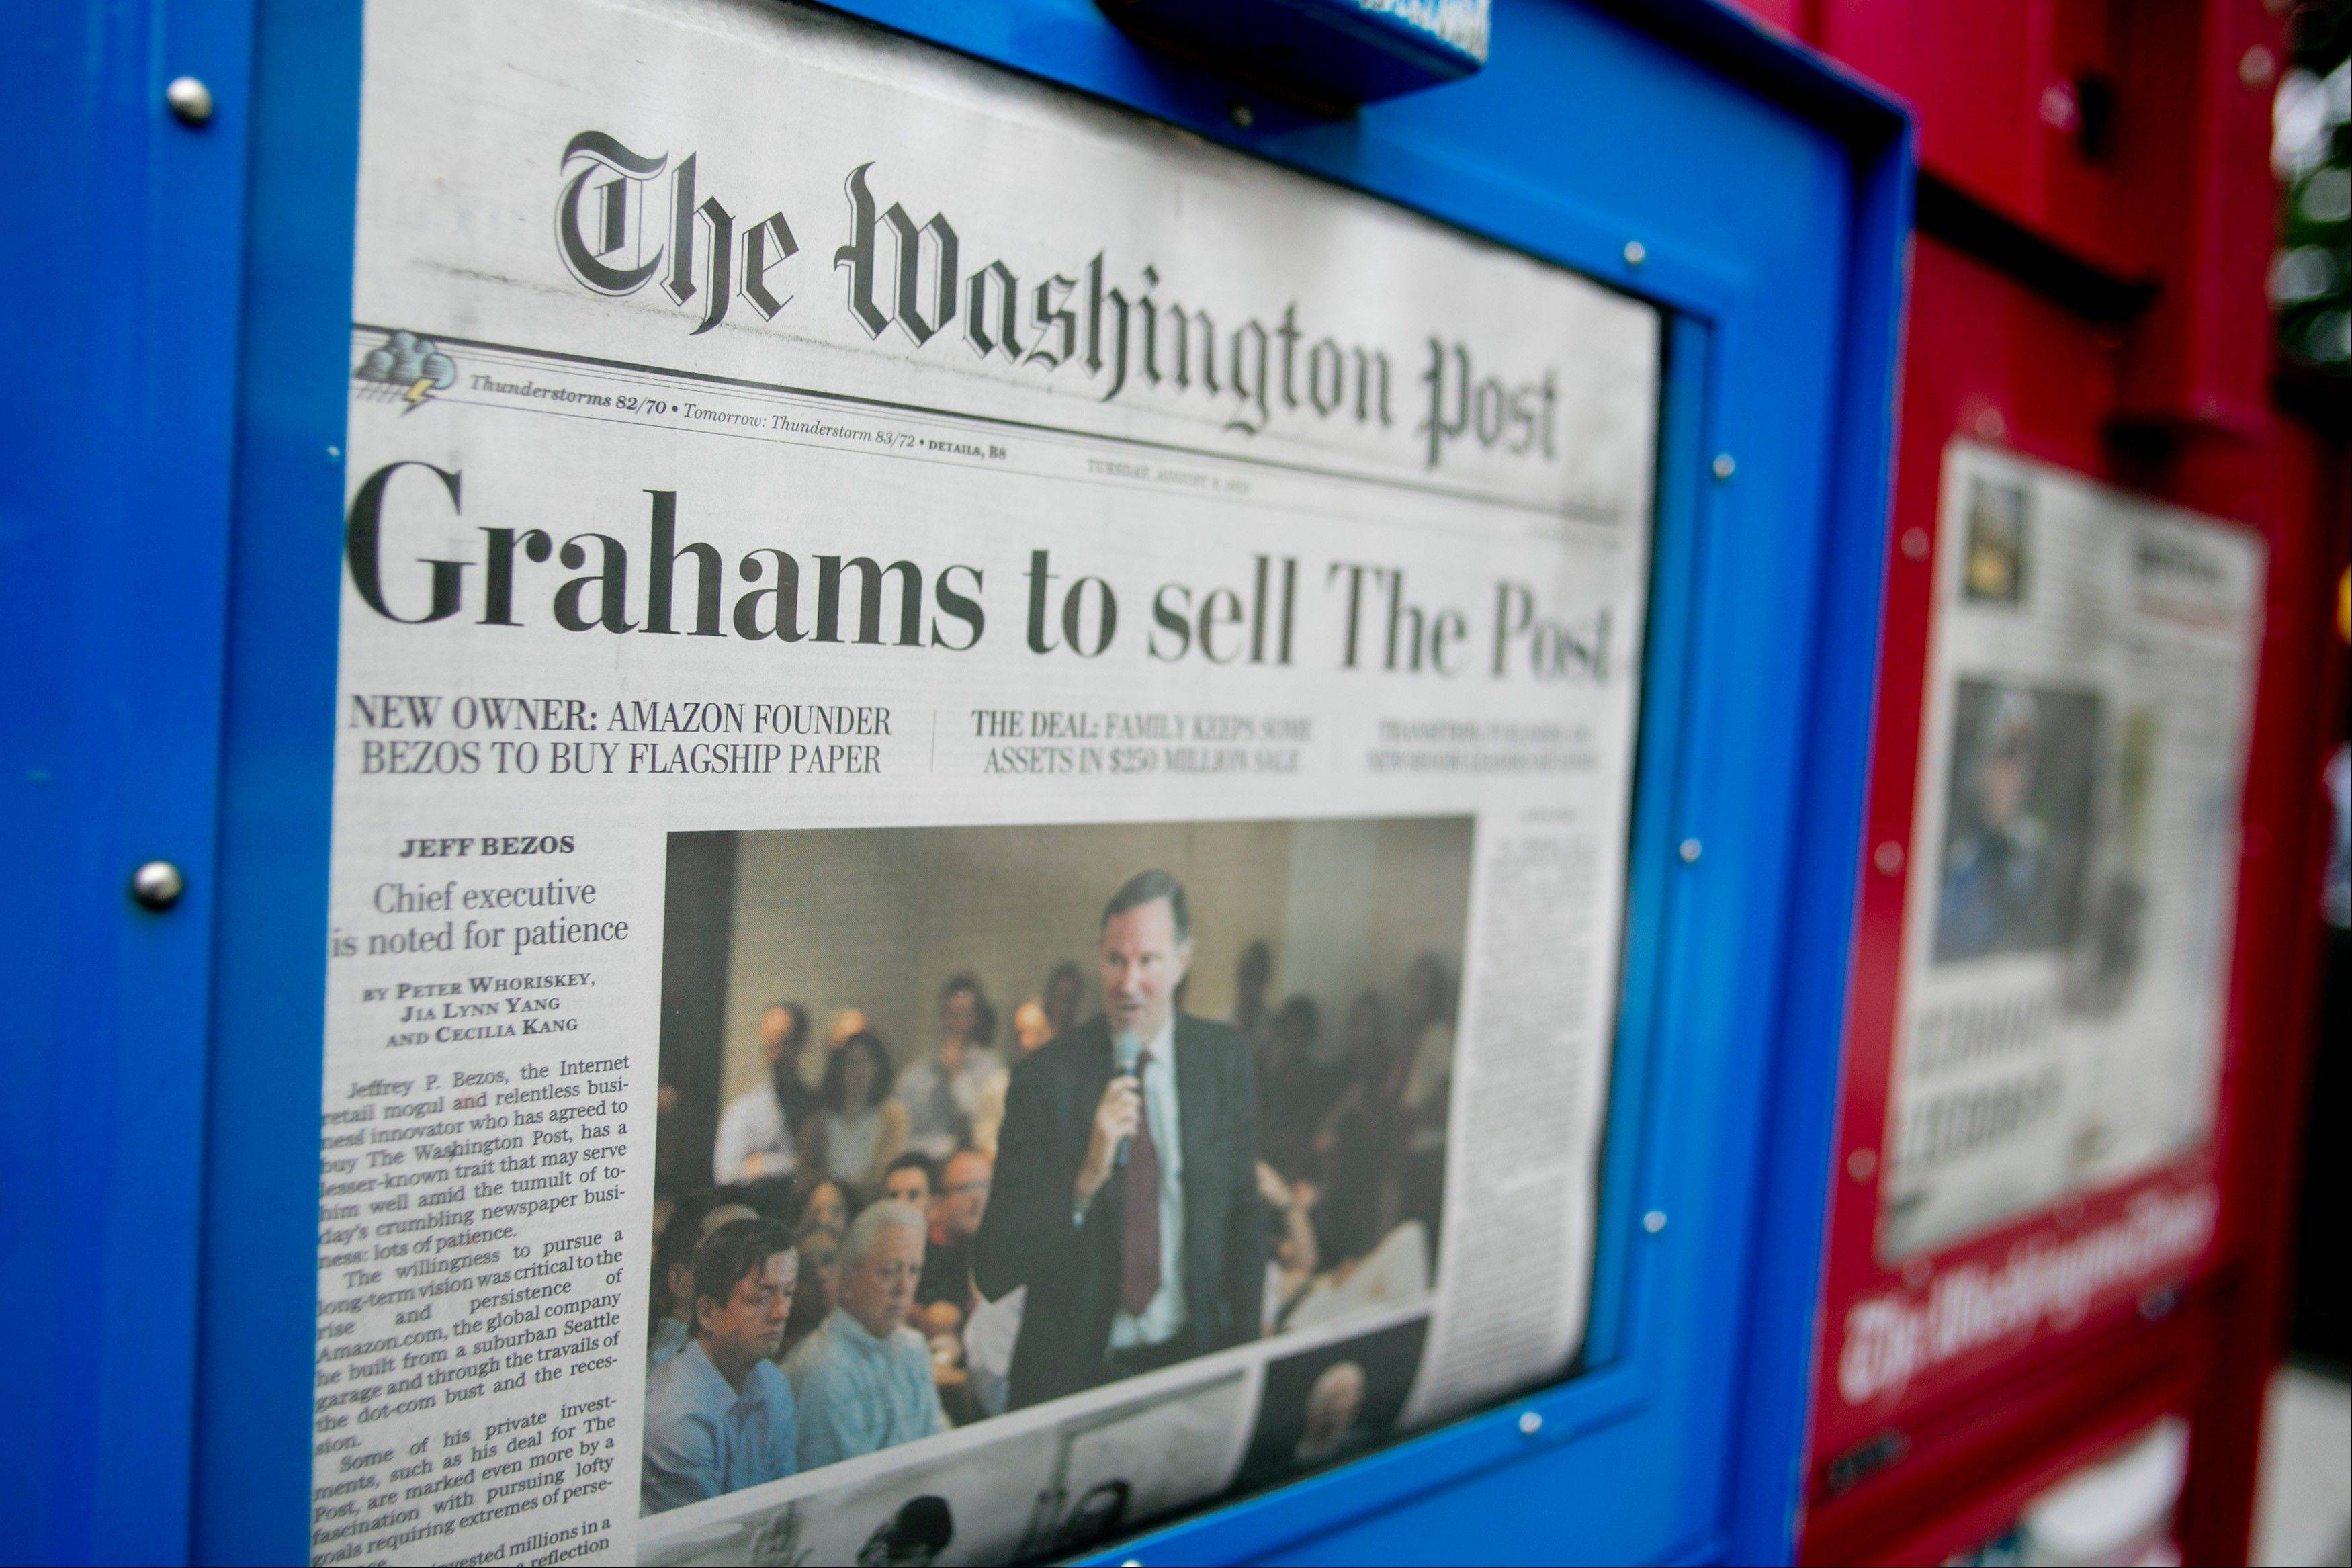 The news that the owners of The Washington Post are to sell the newspaper to billionaire Jeff Bezos is displayed on the front page of the newspaper in Washington, D.C., on Tuesday, Aug. 6, 2013. Amazon.com Inc. Chief Executive Officer Bezos agreed to buy The Washington Post for $250 million, betting that he can apply his success in e-commerce to the struggling newspaper industry.